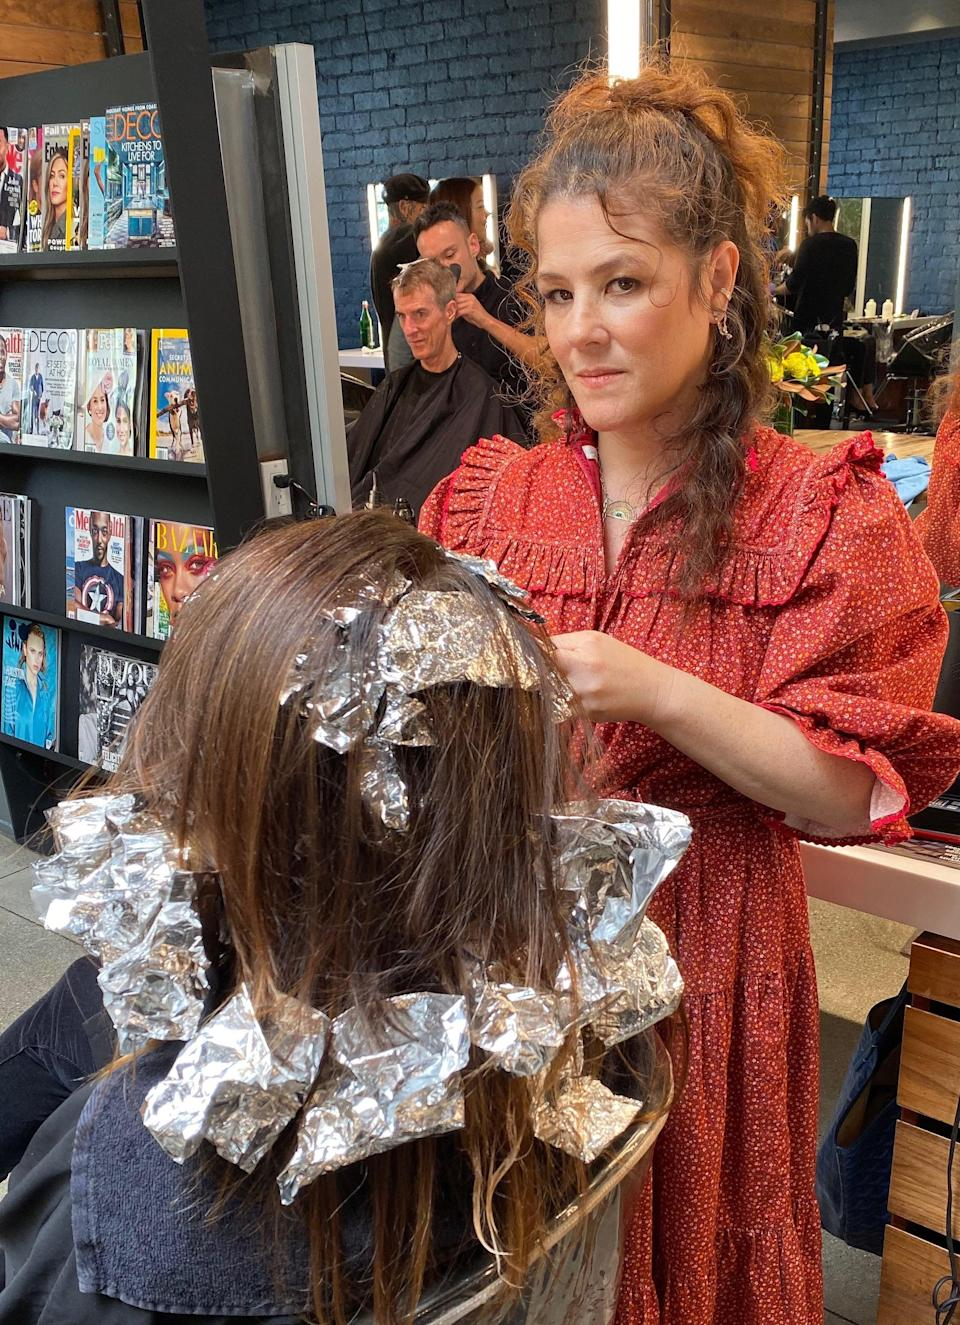 """<p>She advocated going to cosmetology school part-time while finishing her high school degree to her principal and started learning at the Gene Juarez Beauty Academy, which she calls """"the nicest salon in Seattle,"""" in their advanced training center. </p> <p>""""You would pay to be in this program, but you would also work and get paid,"""" Cunningham said. """"I did the laundry, I swept, and I got people coffee. It was the best job, and I was so inspired."""" She did that while nannying for Bette Midler, who paid for the schooling. </p> <p>It wasn't all smooth sailing. Being self-taught, a lot of what Cunningham was learning in beauty school went against how she had always done it. """"I remember one of my teachers telling me that I didn't hold my blow-dryer properly - I don't hold it where everybody else holds it, I hold it by the nozzle,"""" said Cunningham. """"She said, 'You're not doing it right,' and I looked at her and said, 'If you can blow-dry hair as good as me, then I'll hold my blow-dryer like you.' That was not good to say.""""</p> <p>After beauty school, Middler introduced her to Lily Aldridge's parents, Laura Lyons and Alan Aldridge, and her older brother Miles Aldridge, a fashion photographer (Lily was only four at the time). Miles had recently shot a <strong>W Magazine</strong> cover, which happened to be for former stylist Art Luna, or """"Hollywood's Hippest Hairdresser,"""" as the cover said in bold letters. Cunningham knew instantly that she had to work there and reached out. """"It was a great experience,"""" she said. </p> <p>After that, word of her work spread in the celebrity circle. She began working with <a class=""""link rapid-noclick-resp"""" href=""""https://www.popsugar.com/Portia-de-Rossi"""" rel=""""nofollow noopener"""" target=""""_blank"""" data-ylk=""""slk:Portia de Rossi"""">Portia de Rossi</a>, then came Anjelica Huston, Angela Featherstone, and <a class=""""link rapid-noclick-resp"""" href=""""https://www.popsugar.com/Ren%C3%A9e-Zellweger"""" rel=""""nofollow noopener"""" target=""""_blank"""" data-ylk=""""slk:Renée Zell"""